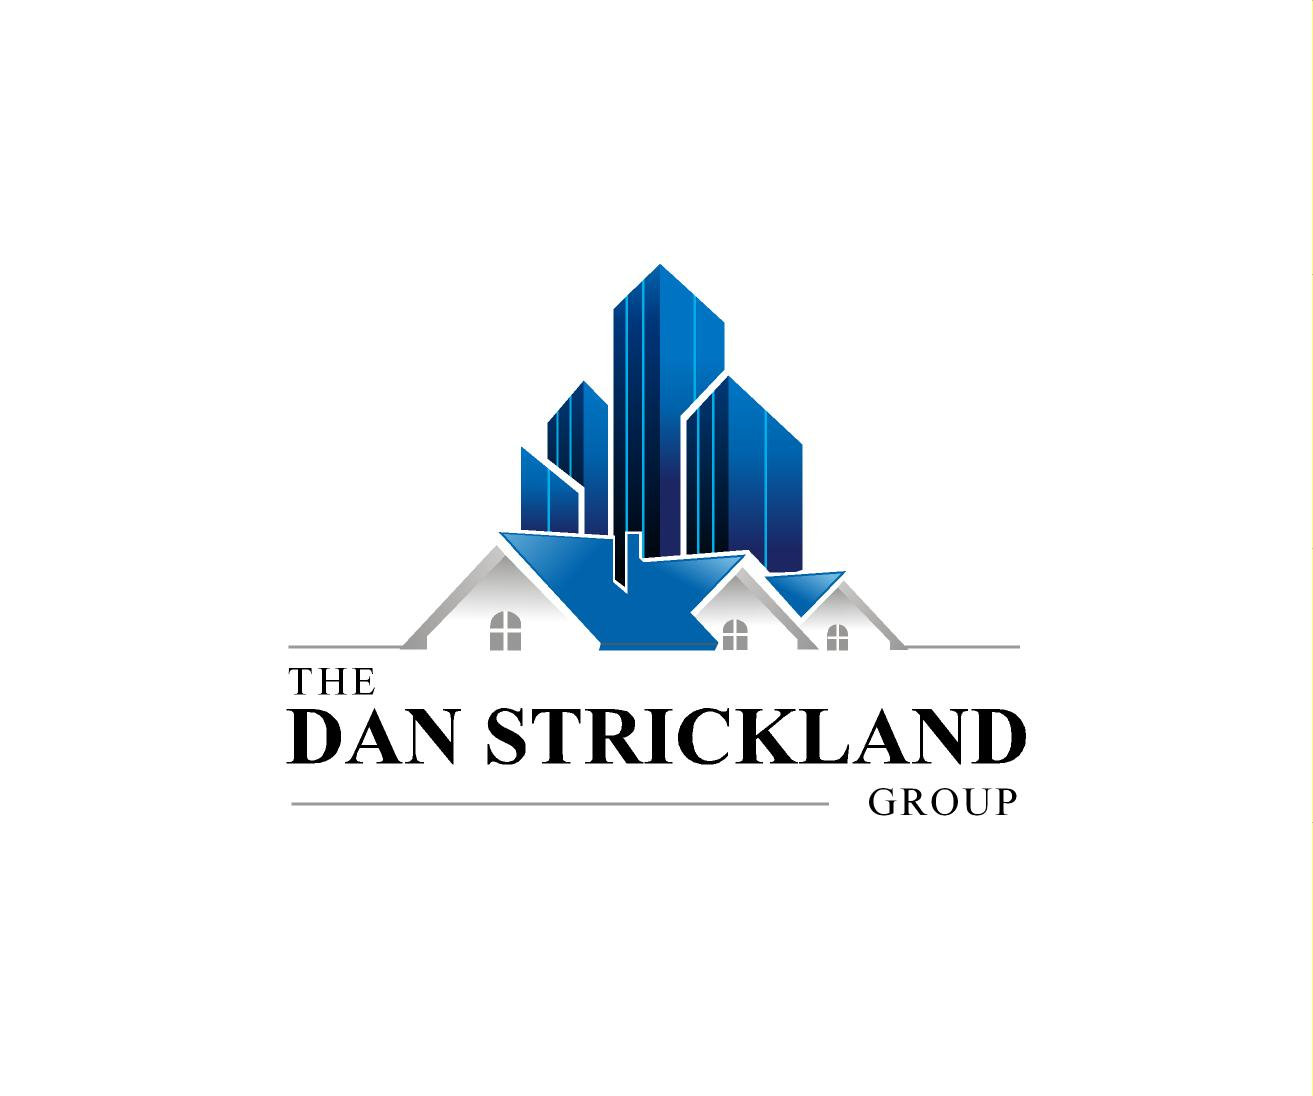 Logo Design by ZAYYADI AHMAD - Entry No. 379 in the Logo Design Contest Creative Logo Design for The Dan Strickland Group.